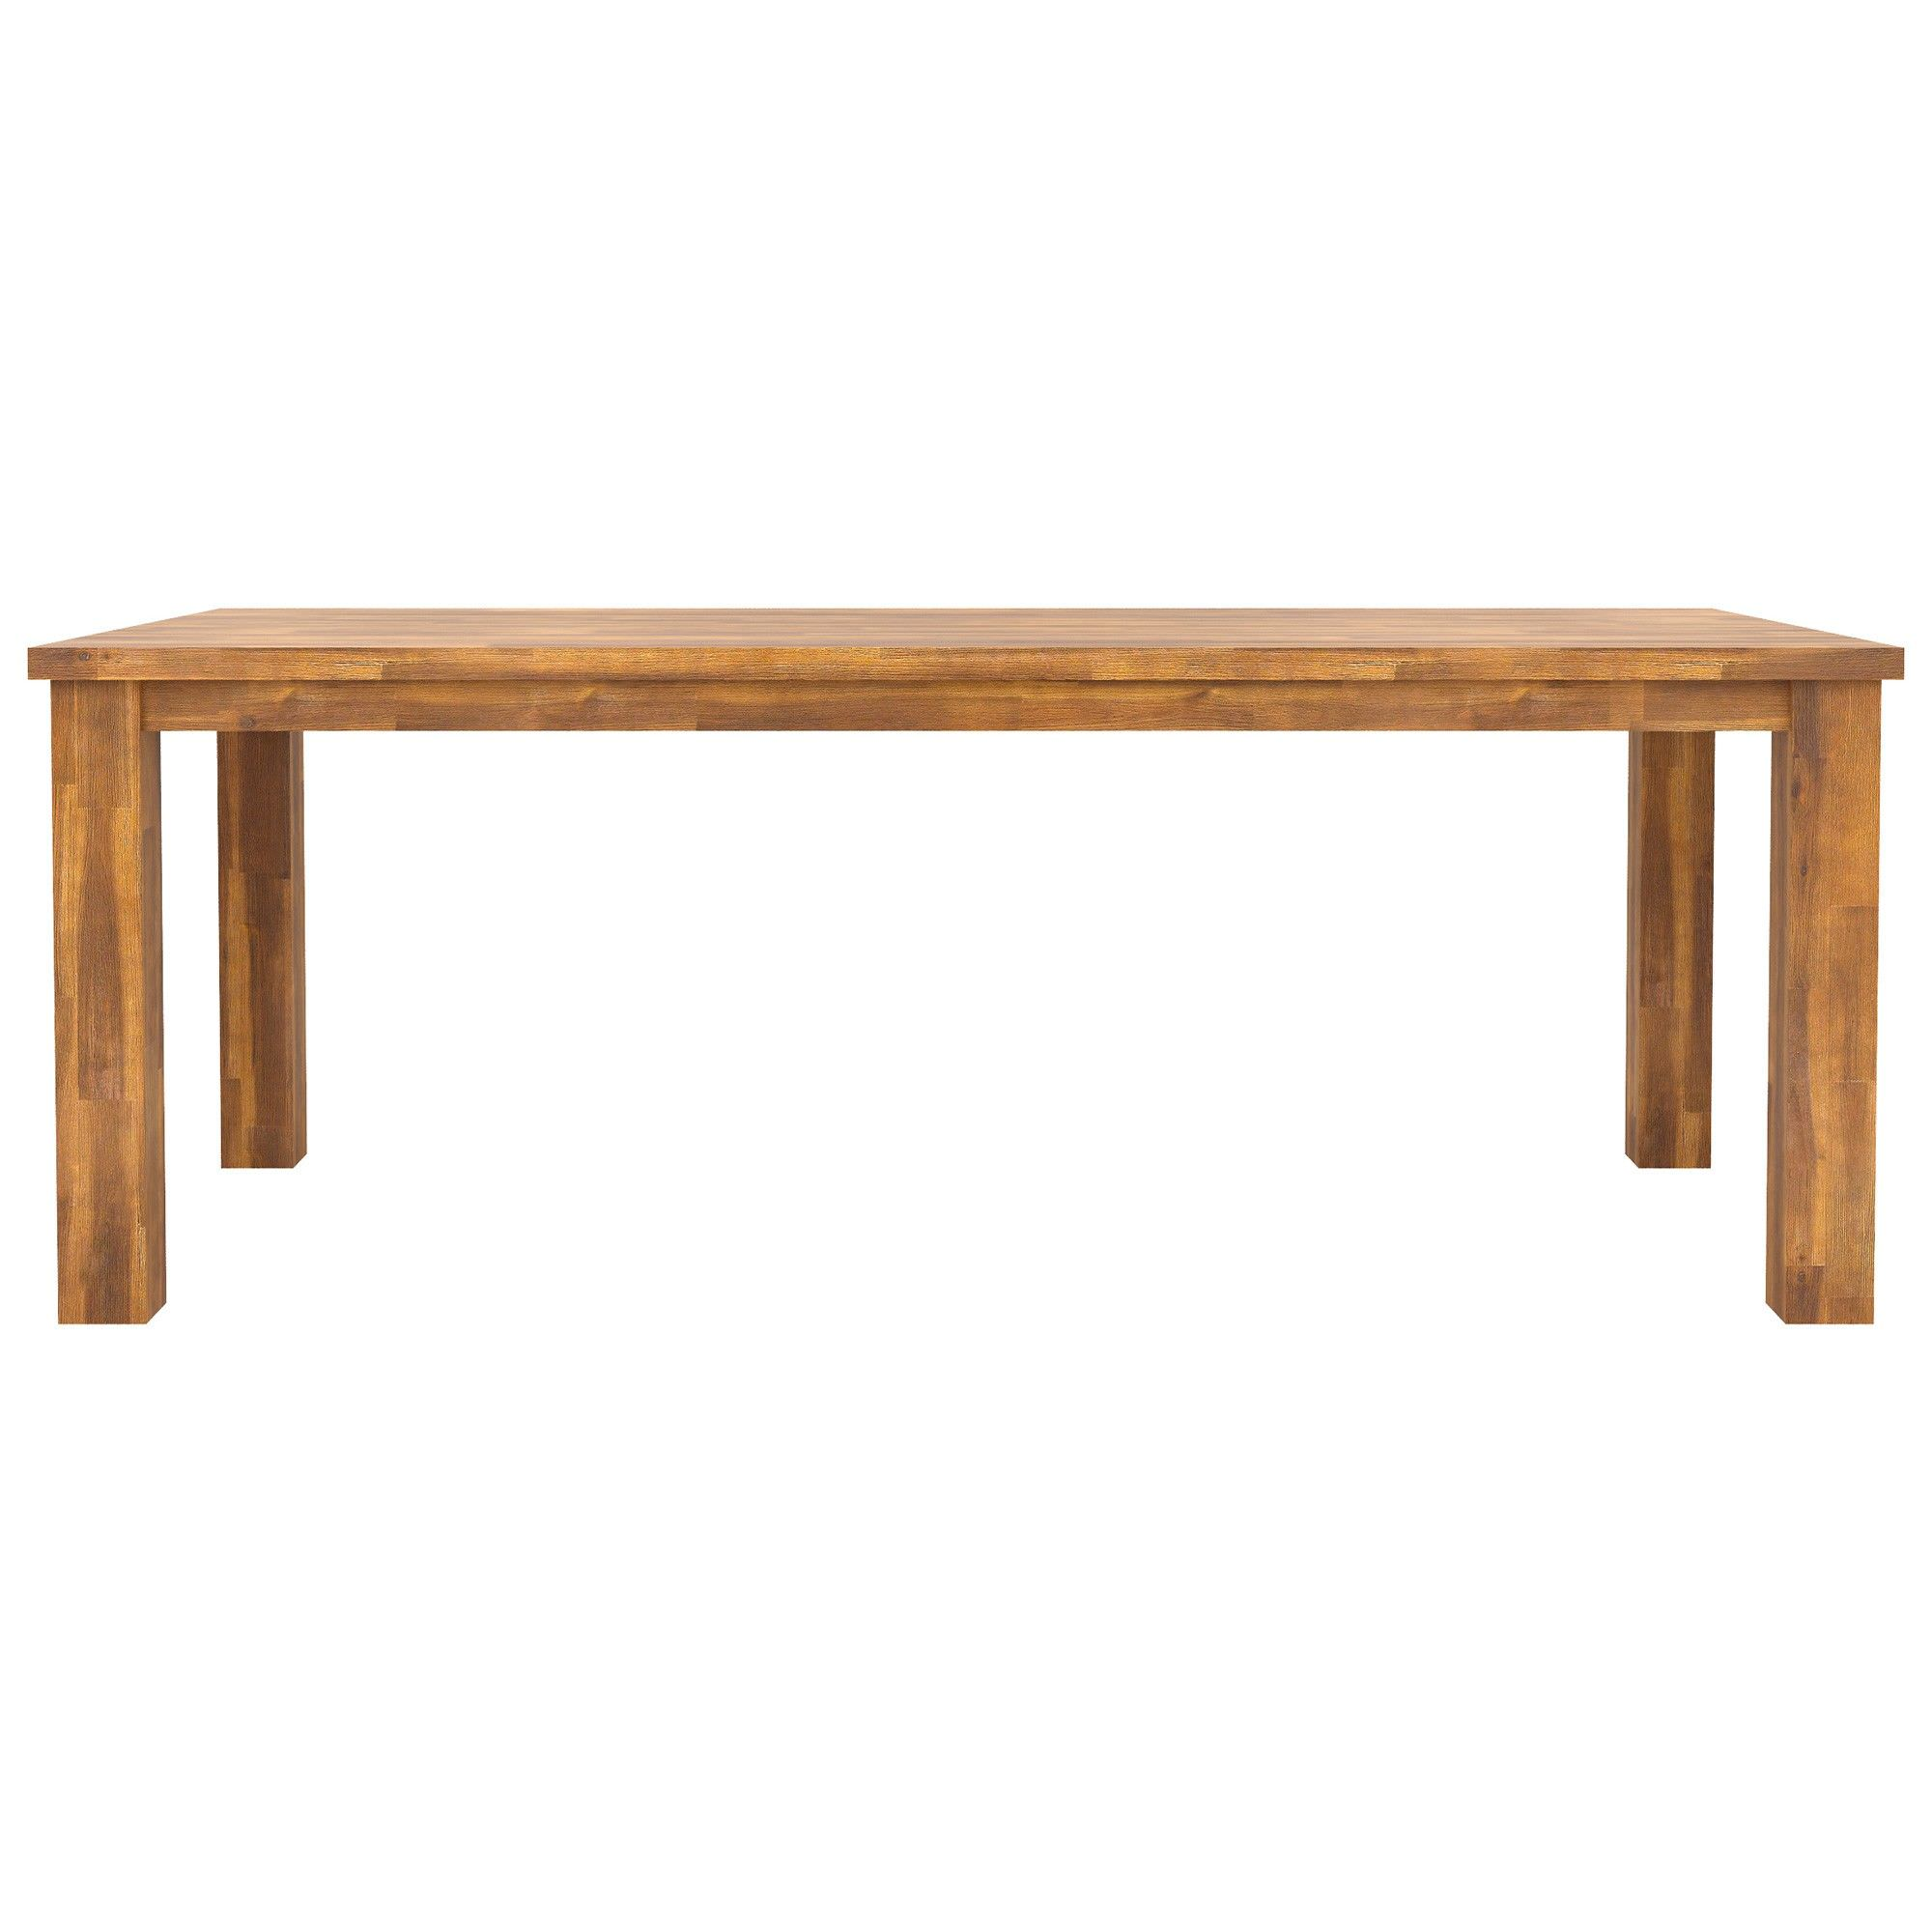 Bowden Acacia Timber Dining Table, 180cm